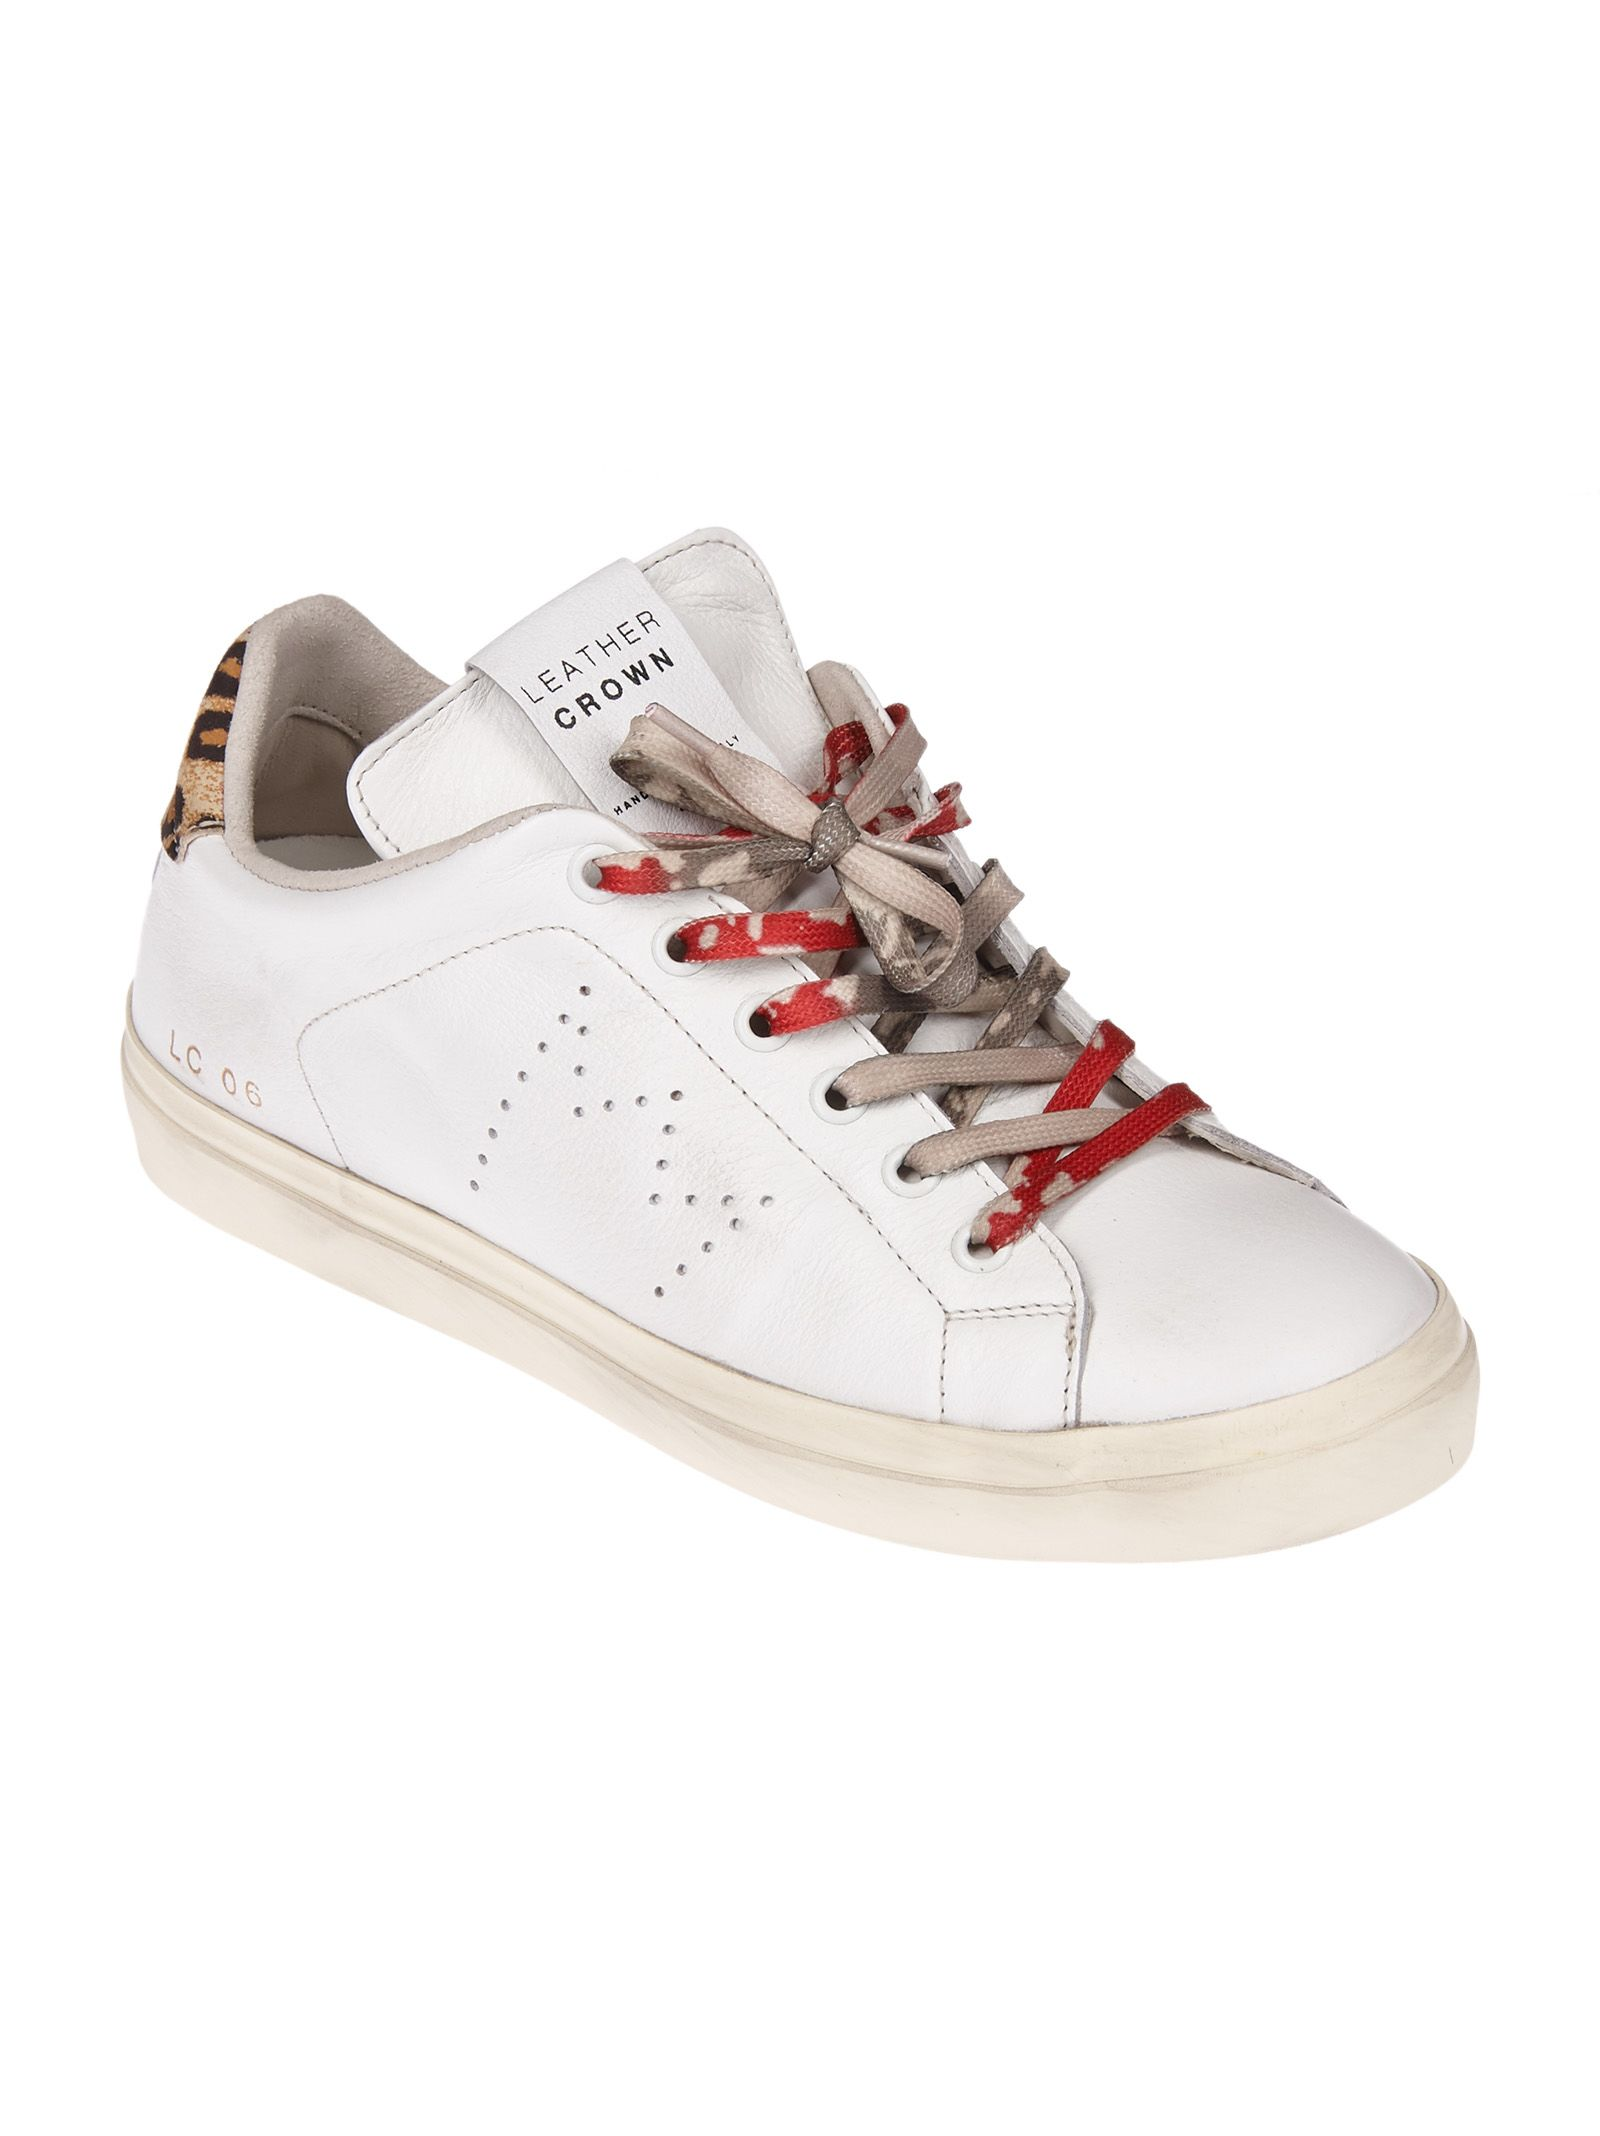 Leather Crown Leopard Print Sneaker Buy Cheap Recommend Sale Looking For j0LUH